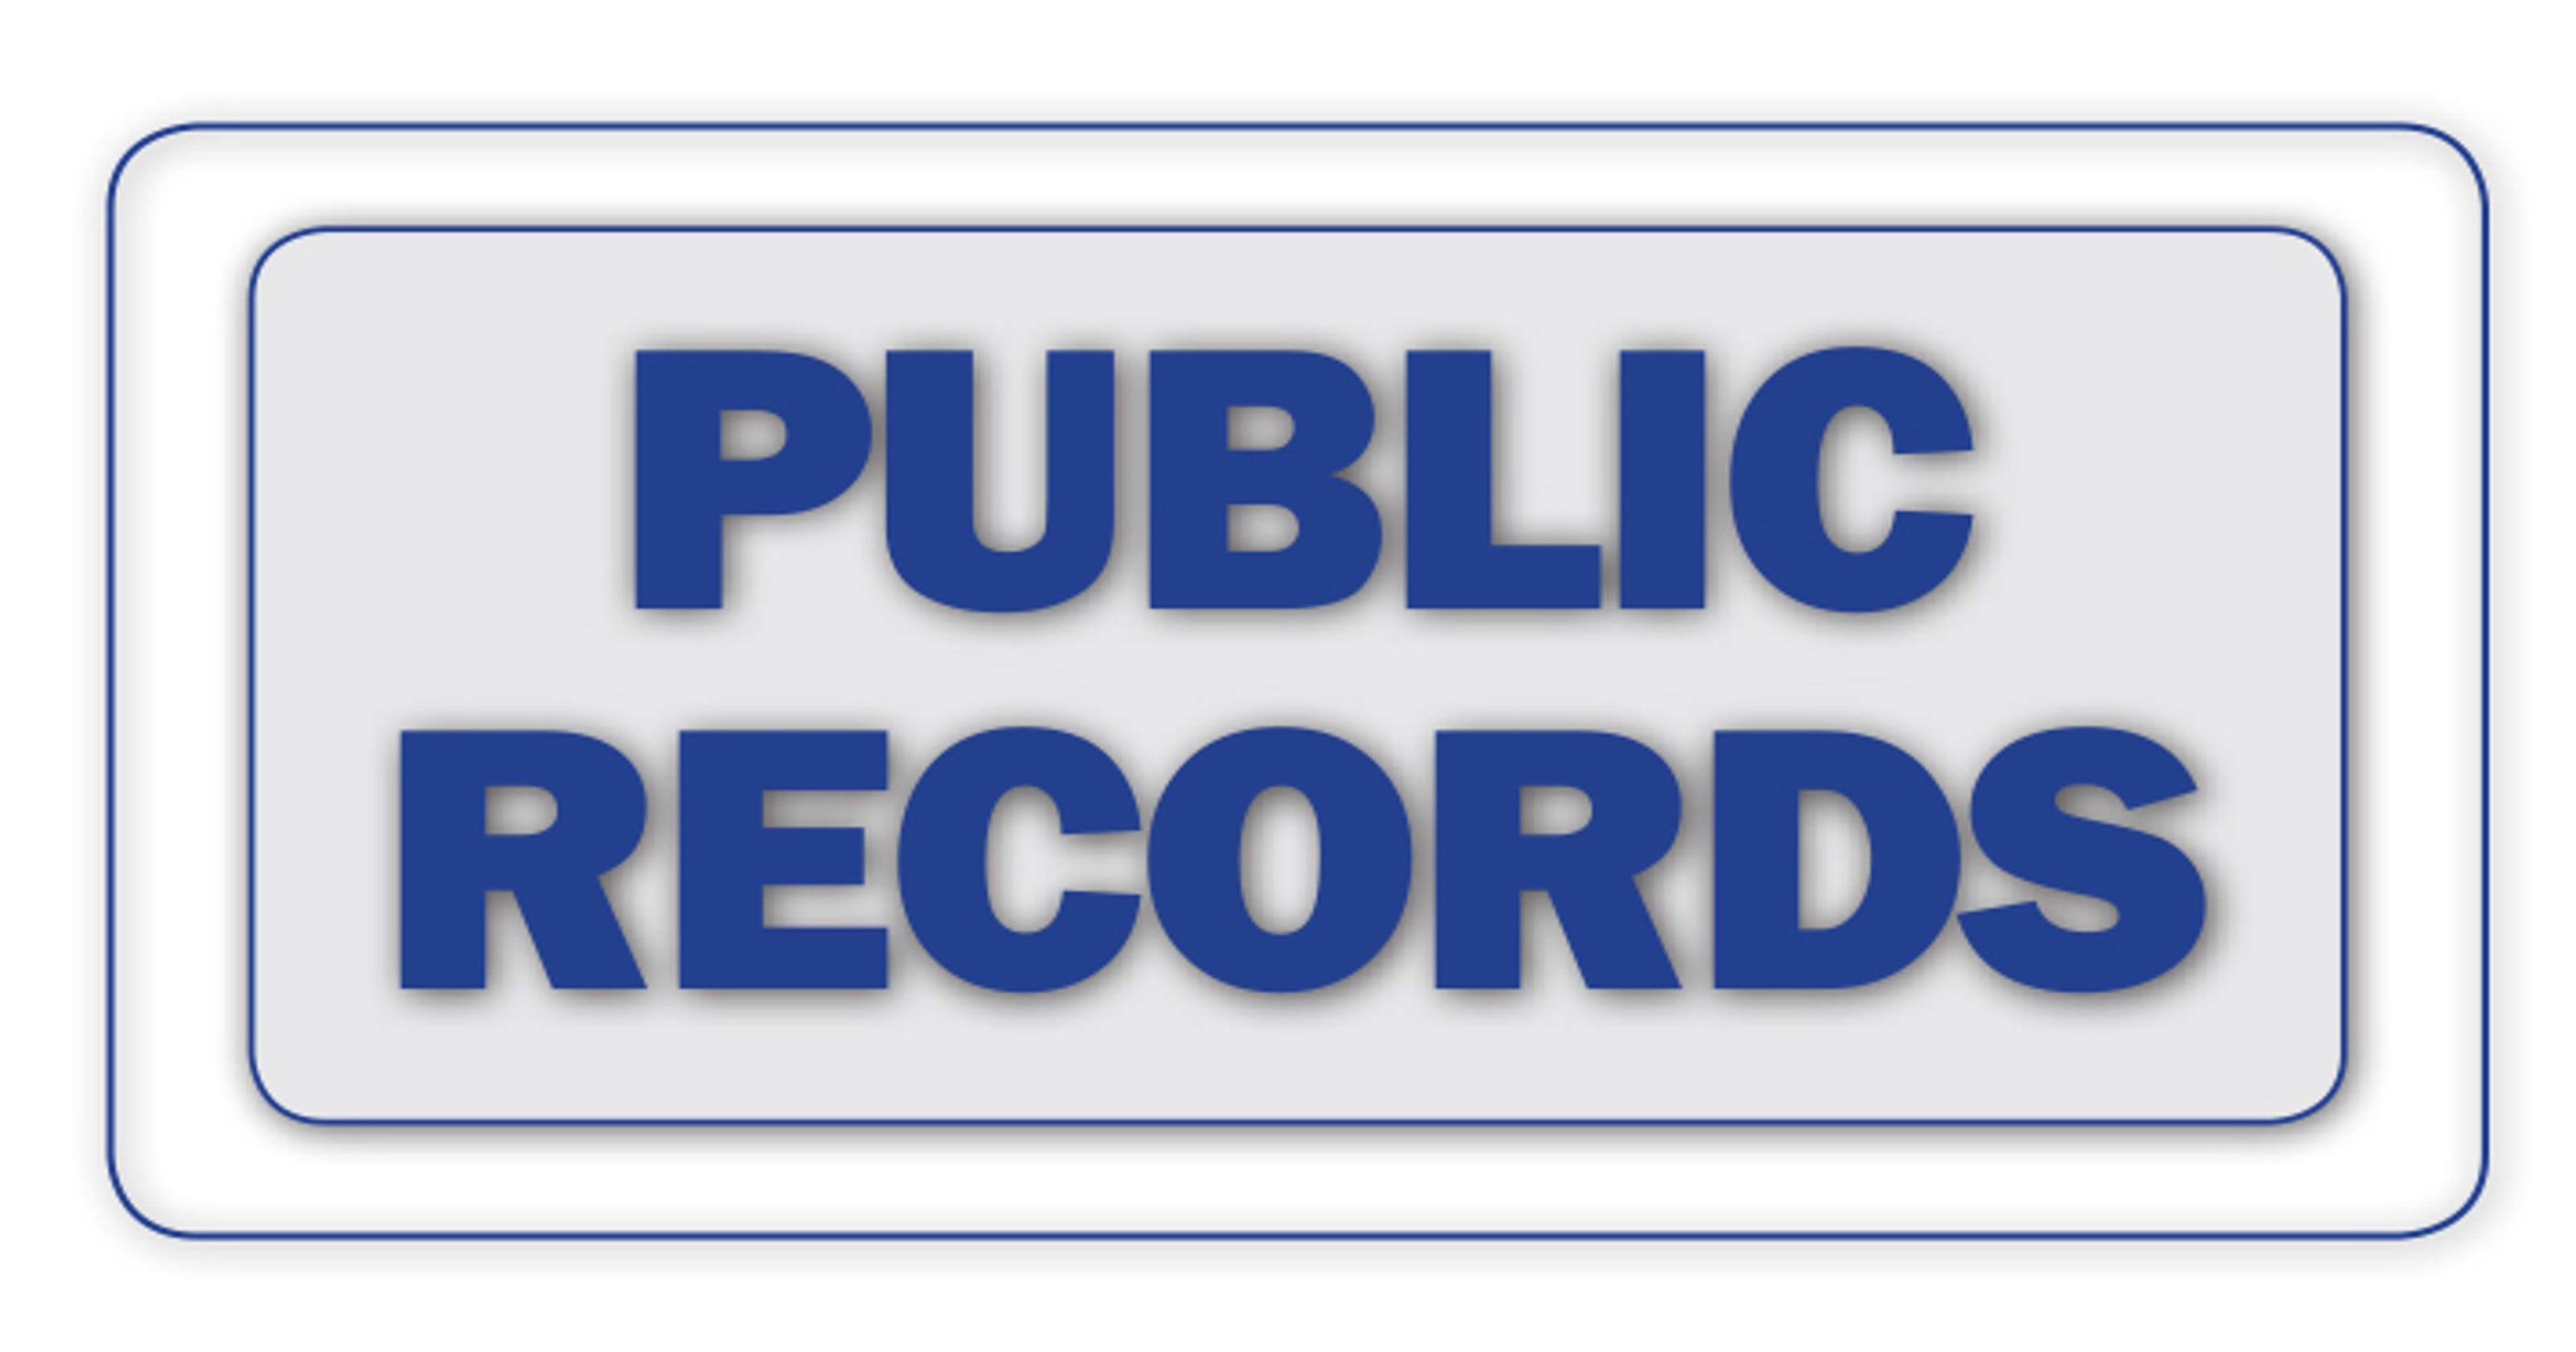 Public records: May